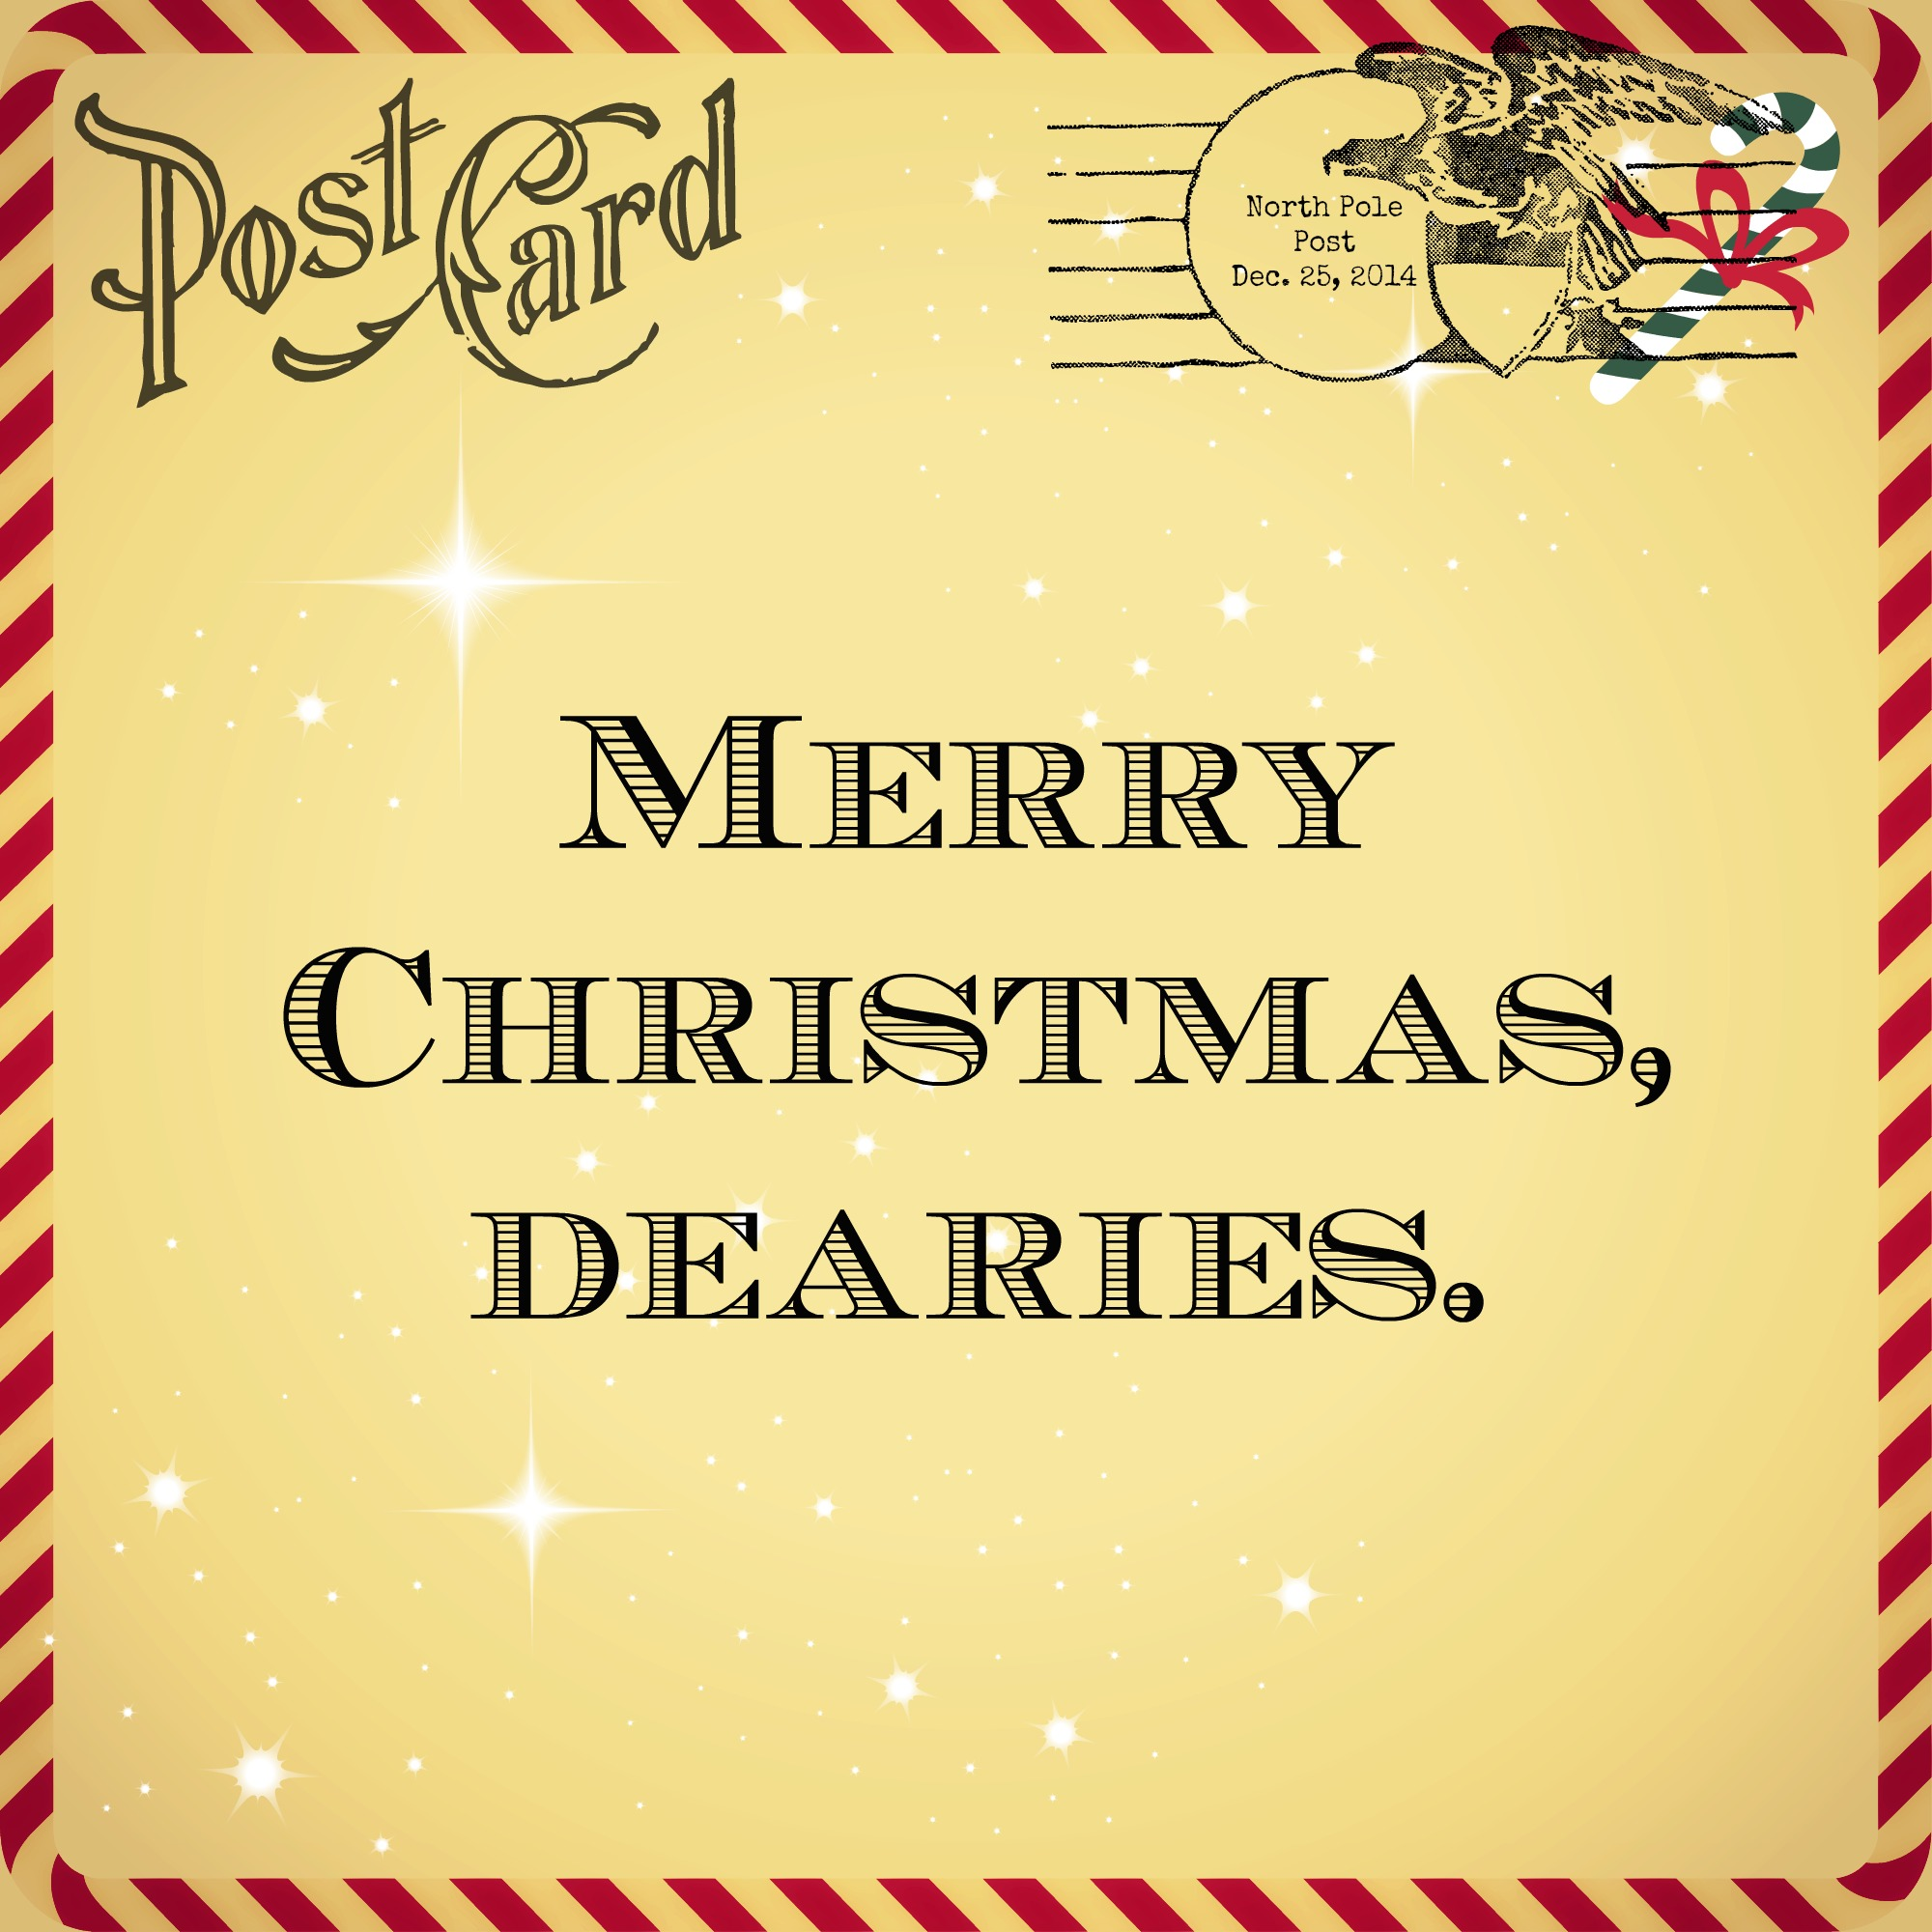 Merry Christmas Dearies